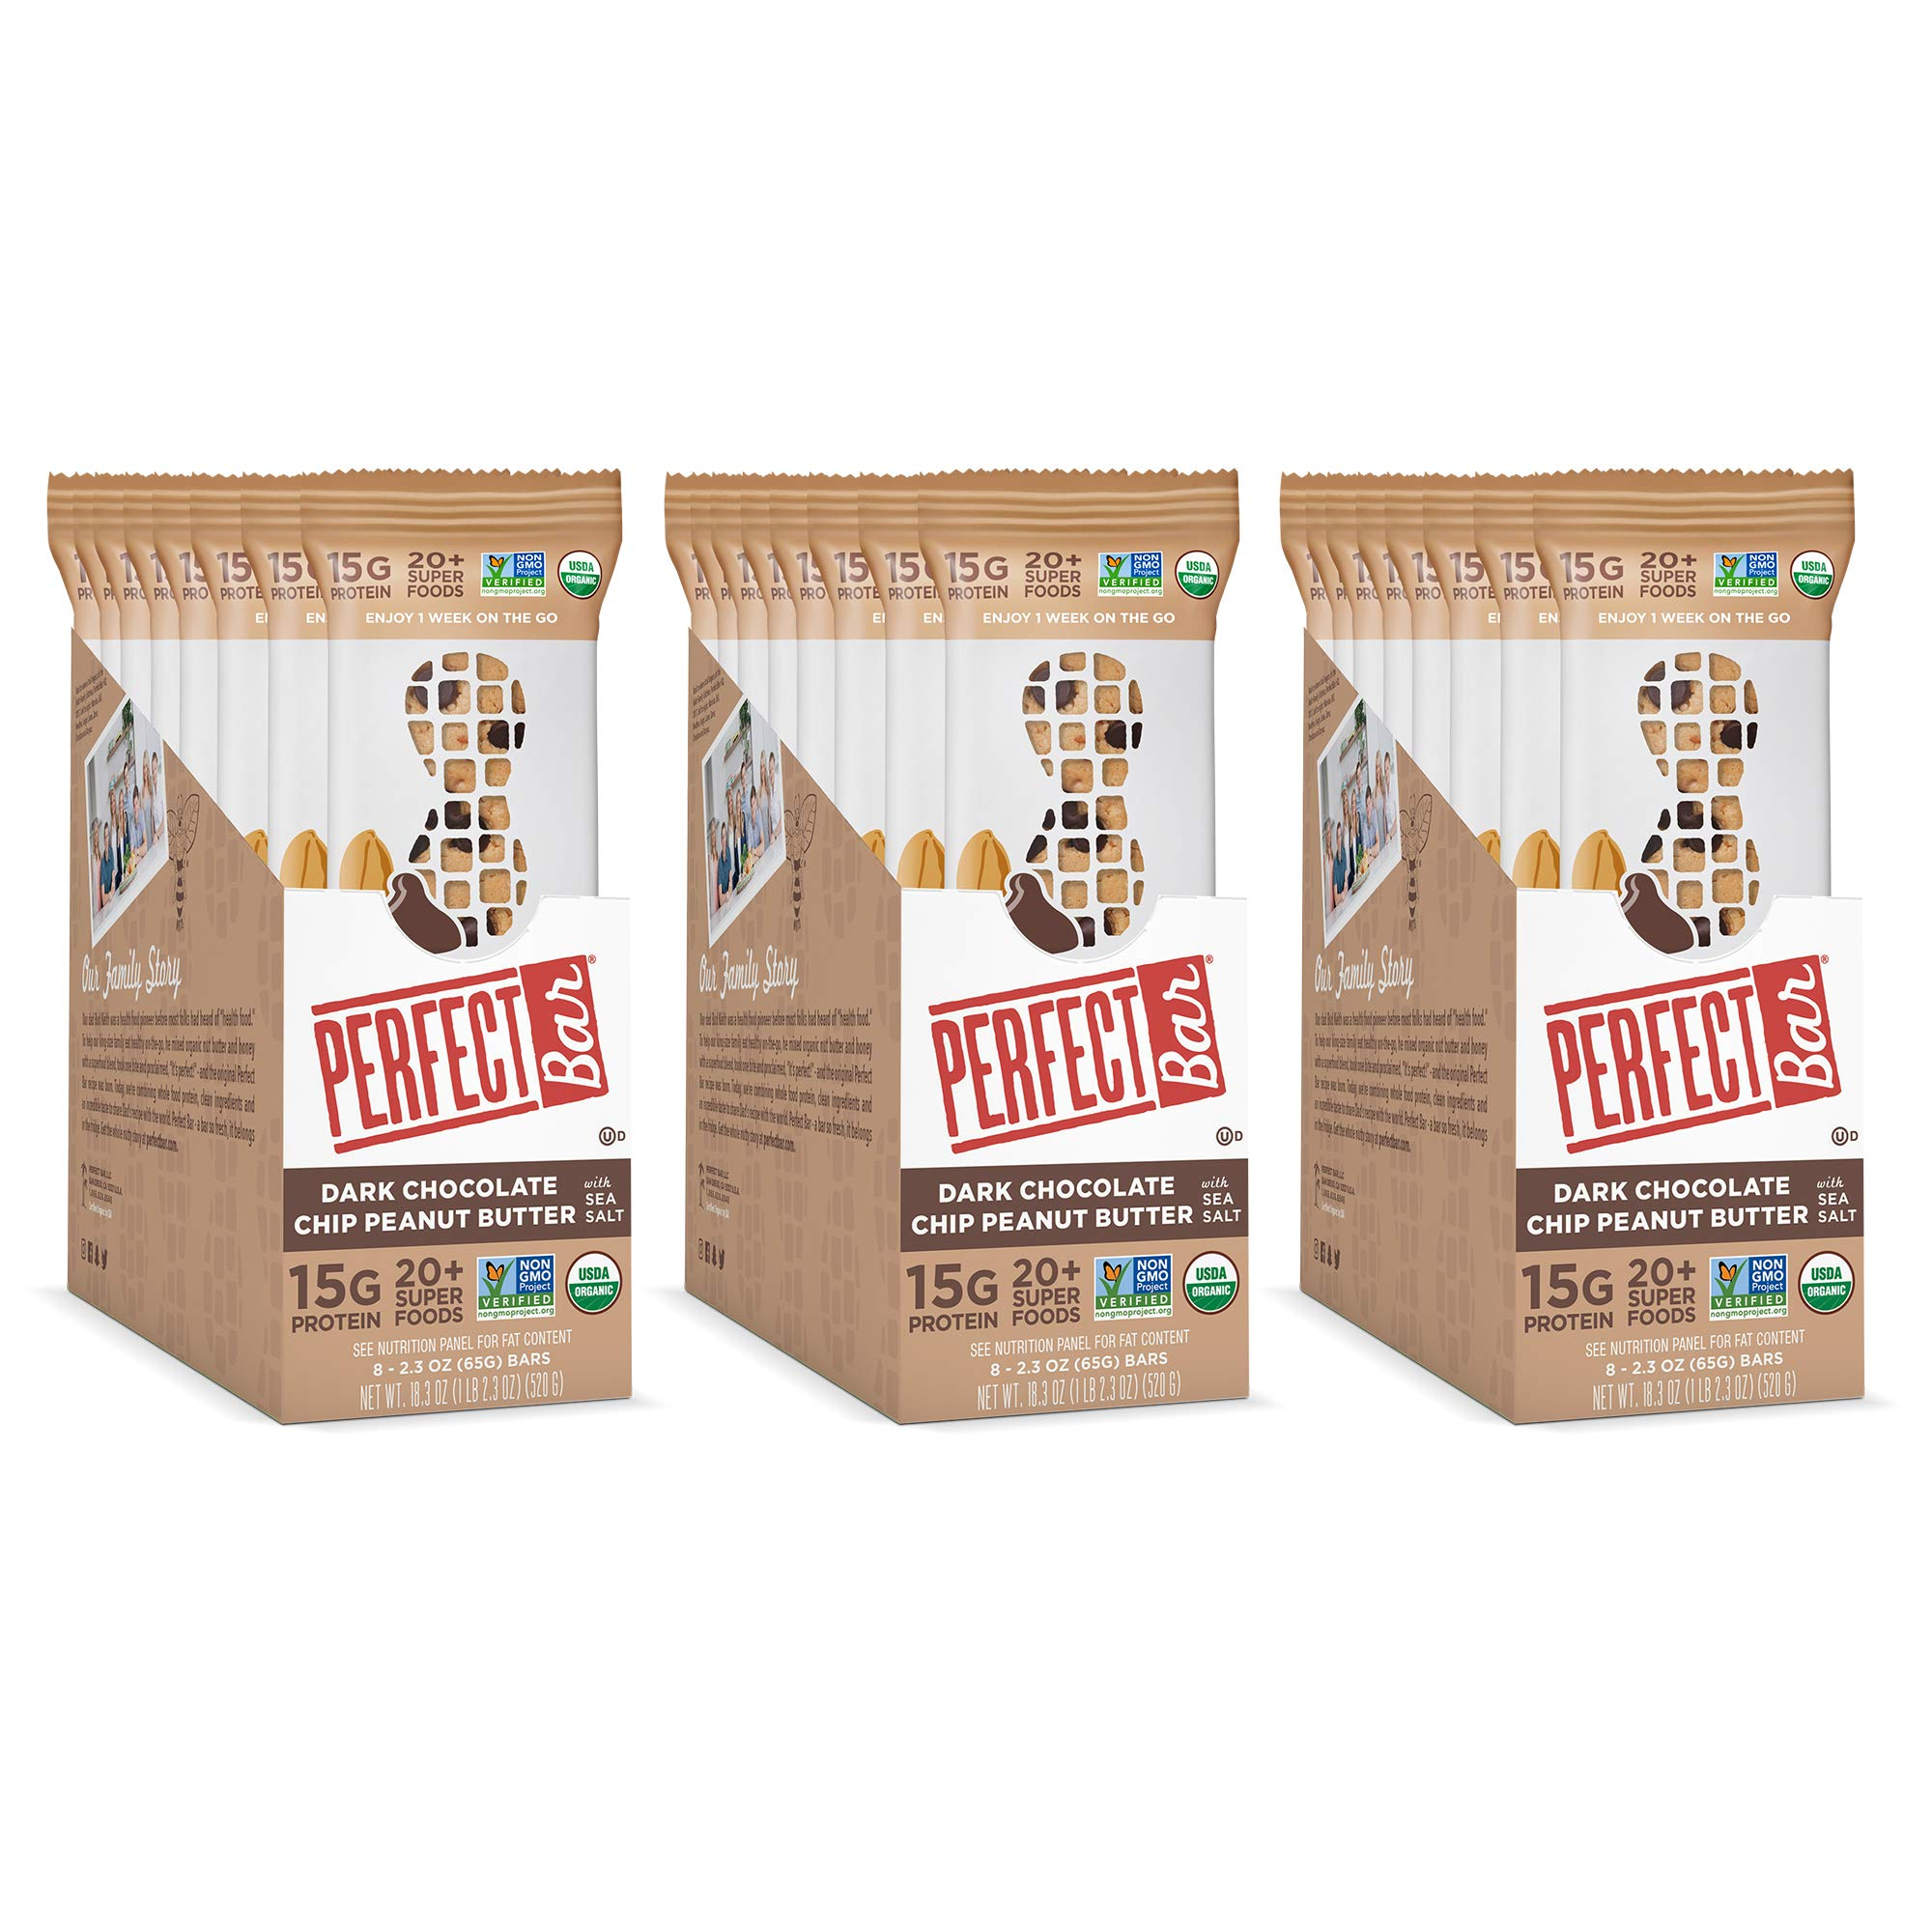 Perfect Bar Original Refrigerated Protein Bar, Dark Chocolate Chip Peanut Butter, 15g Whole Food Protein, Gluten Free, Organic and Non-GMO, 2.3 Oz. Bar (24 Bars) by Perfect Bar (Image #3)